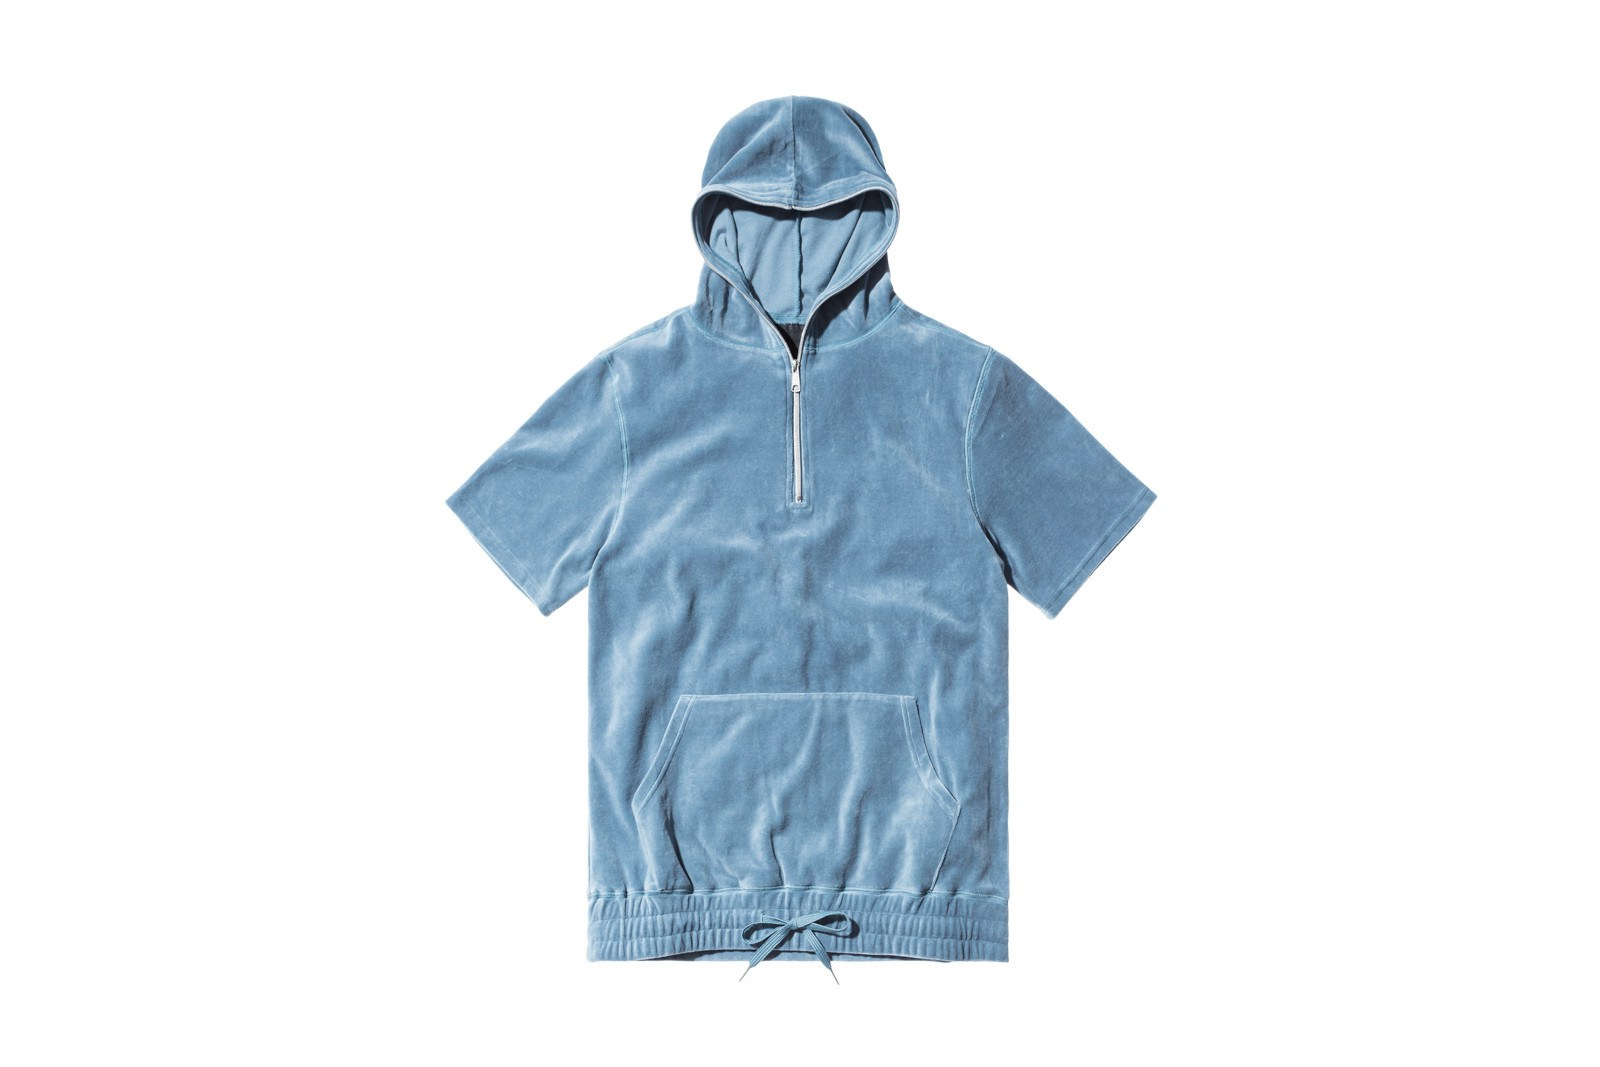 kith-special-velour-capsule-collection-3